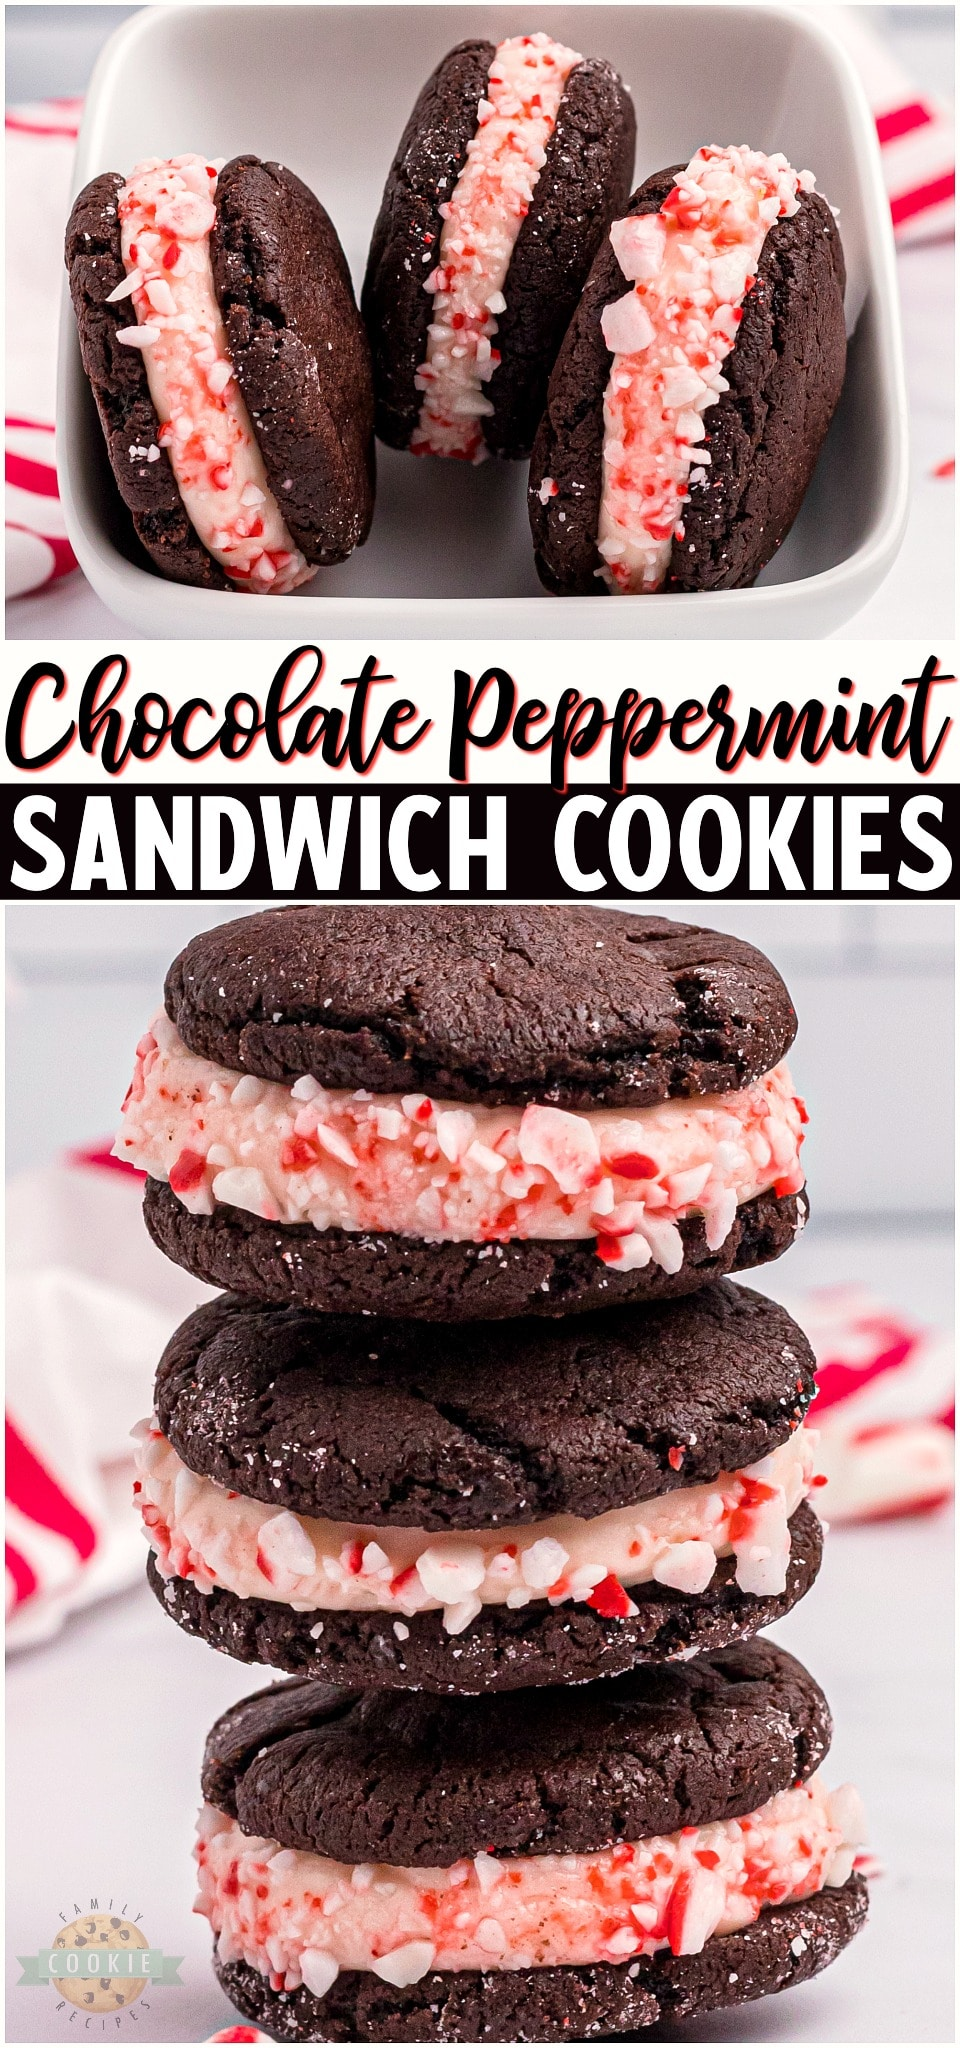 Peppermint Chocolate Sandwich Cookies are a lovely holiday treat made with soft chocolate cookies and a peppermint cheesecake filling. Perfect holiday cookies for gift giving and dessert trays!